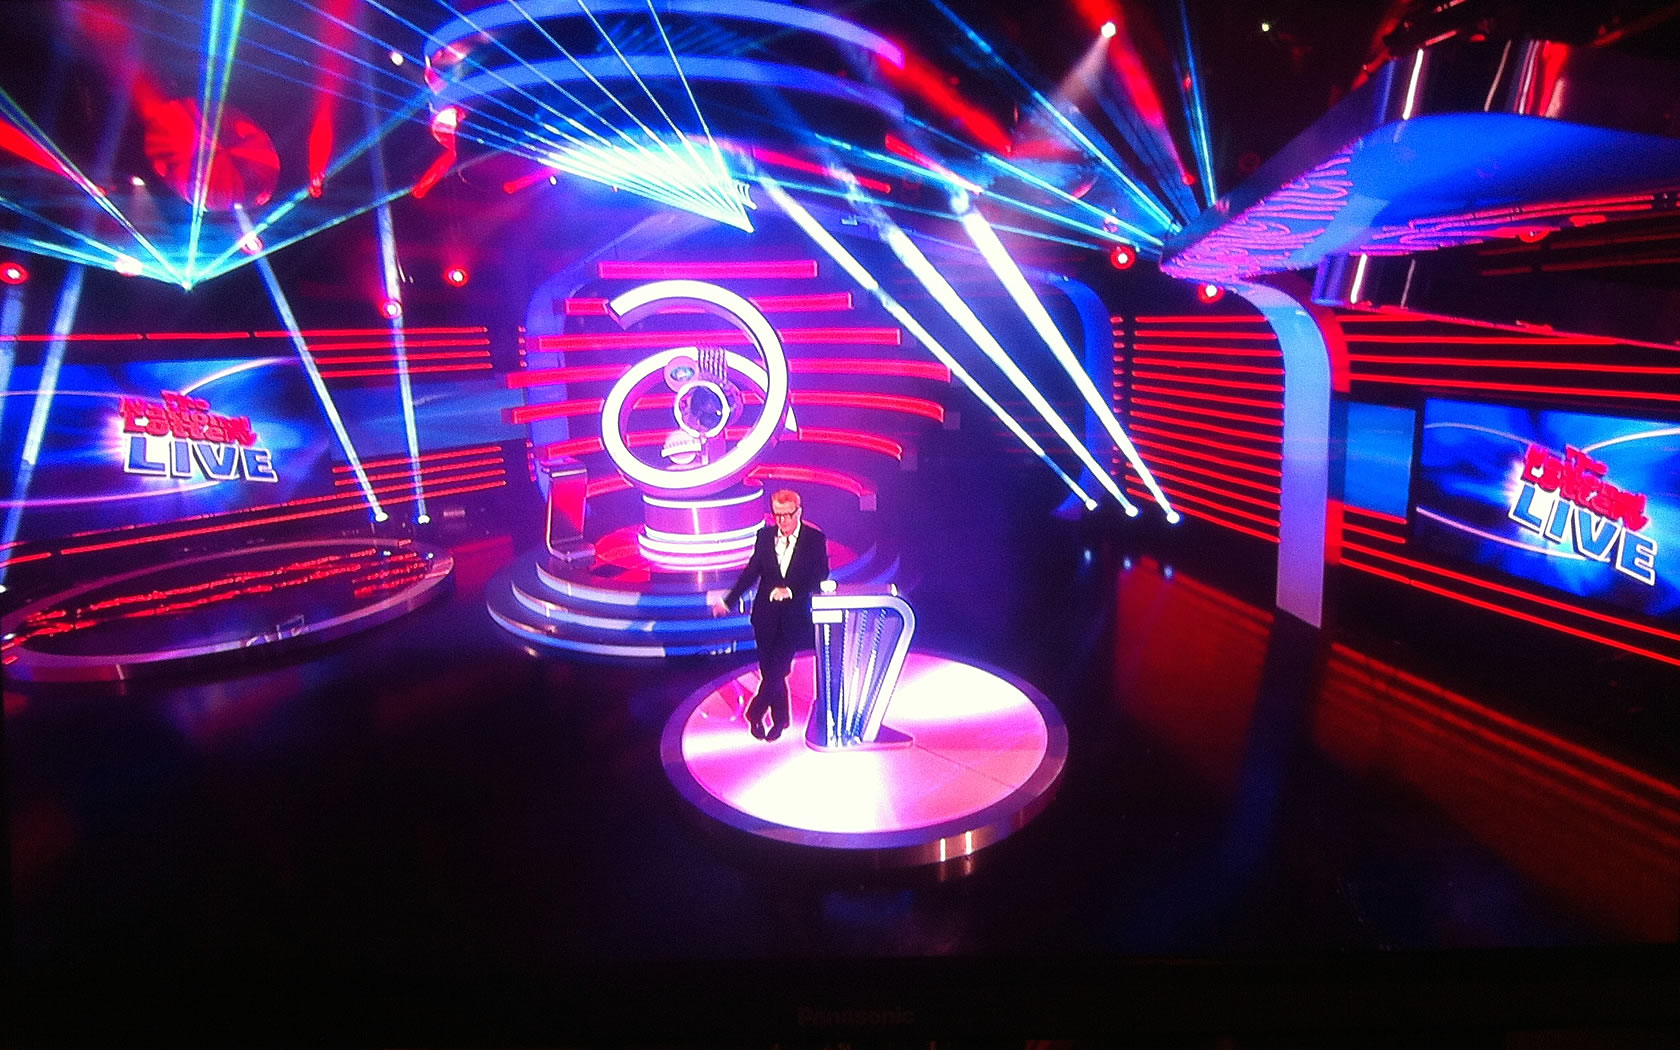 National Lottery Live